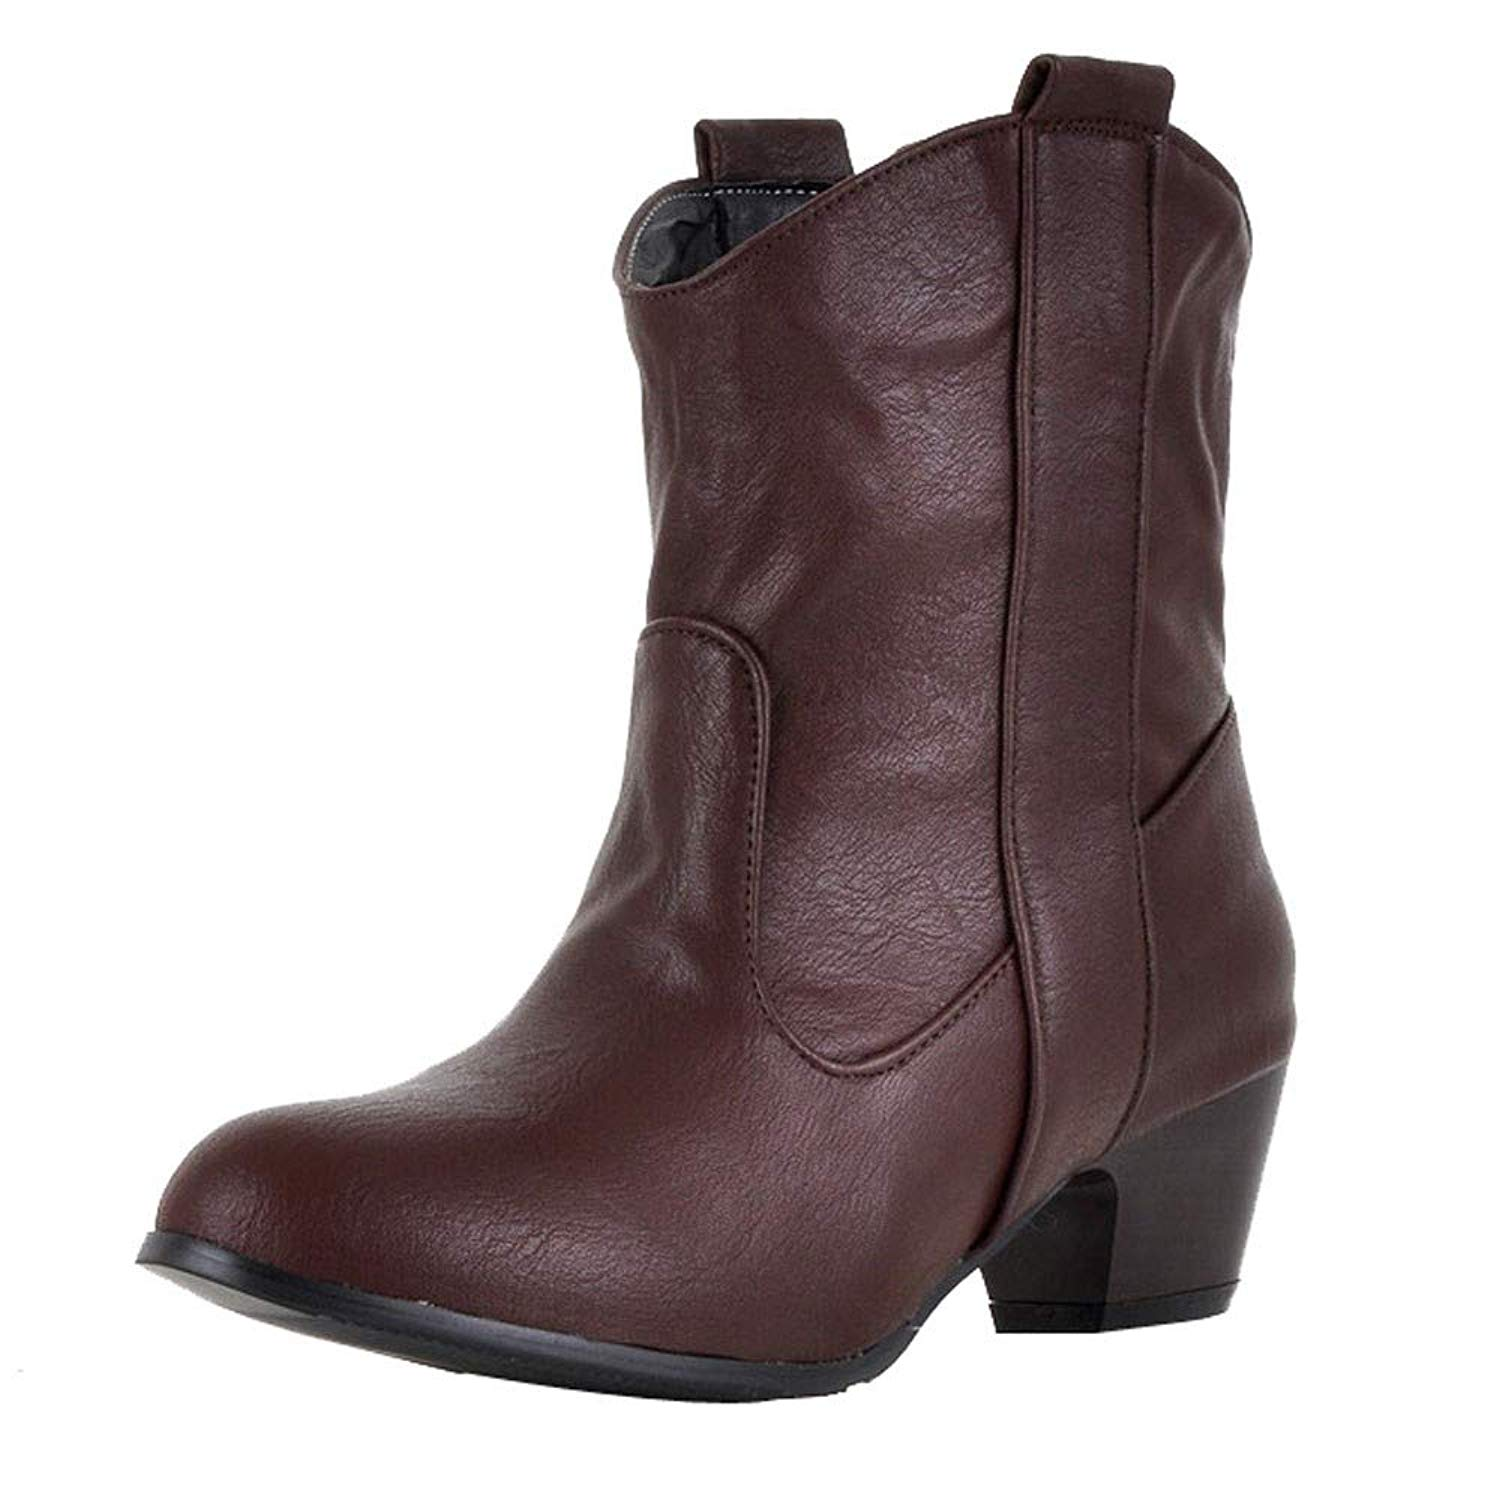 Aurorax-shoes Womens Leather Low Boot High Heel Shoe Cowboy Style Ankle Boots Size 5.5-9.5